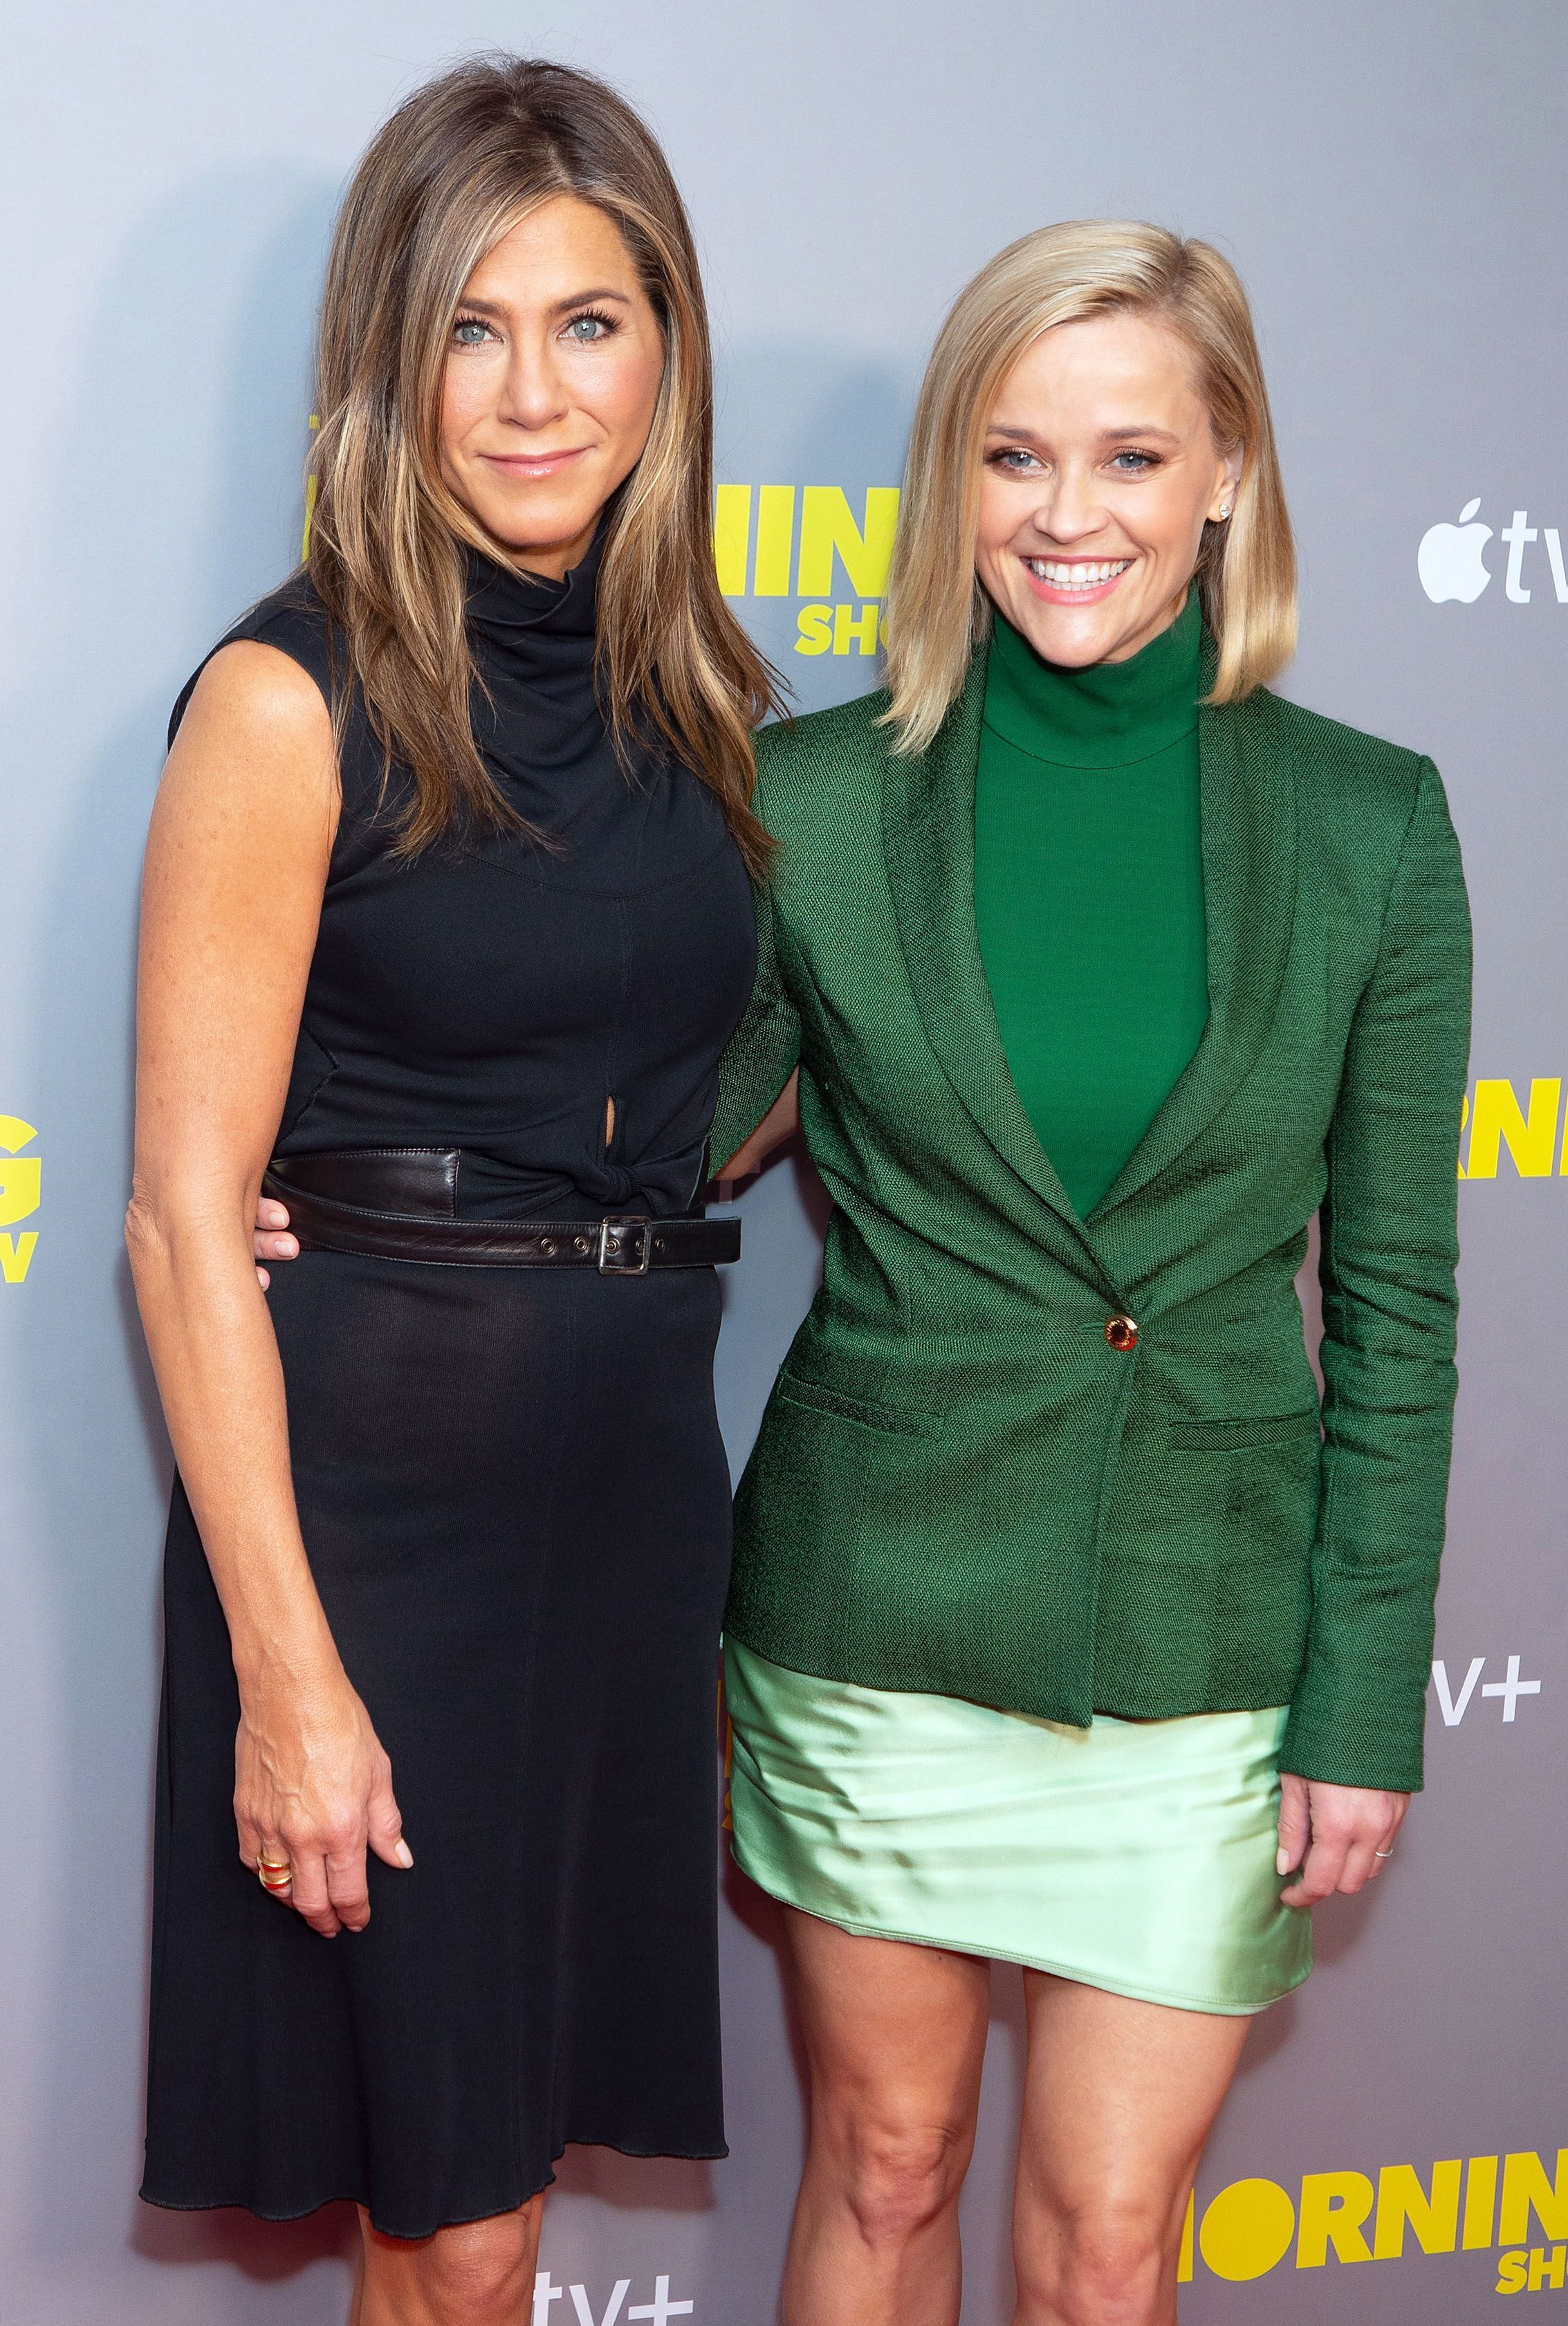 Reese Witherspoon Reveals She Turned Down The Chance To Do More Episodes Of 'Friends'